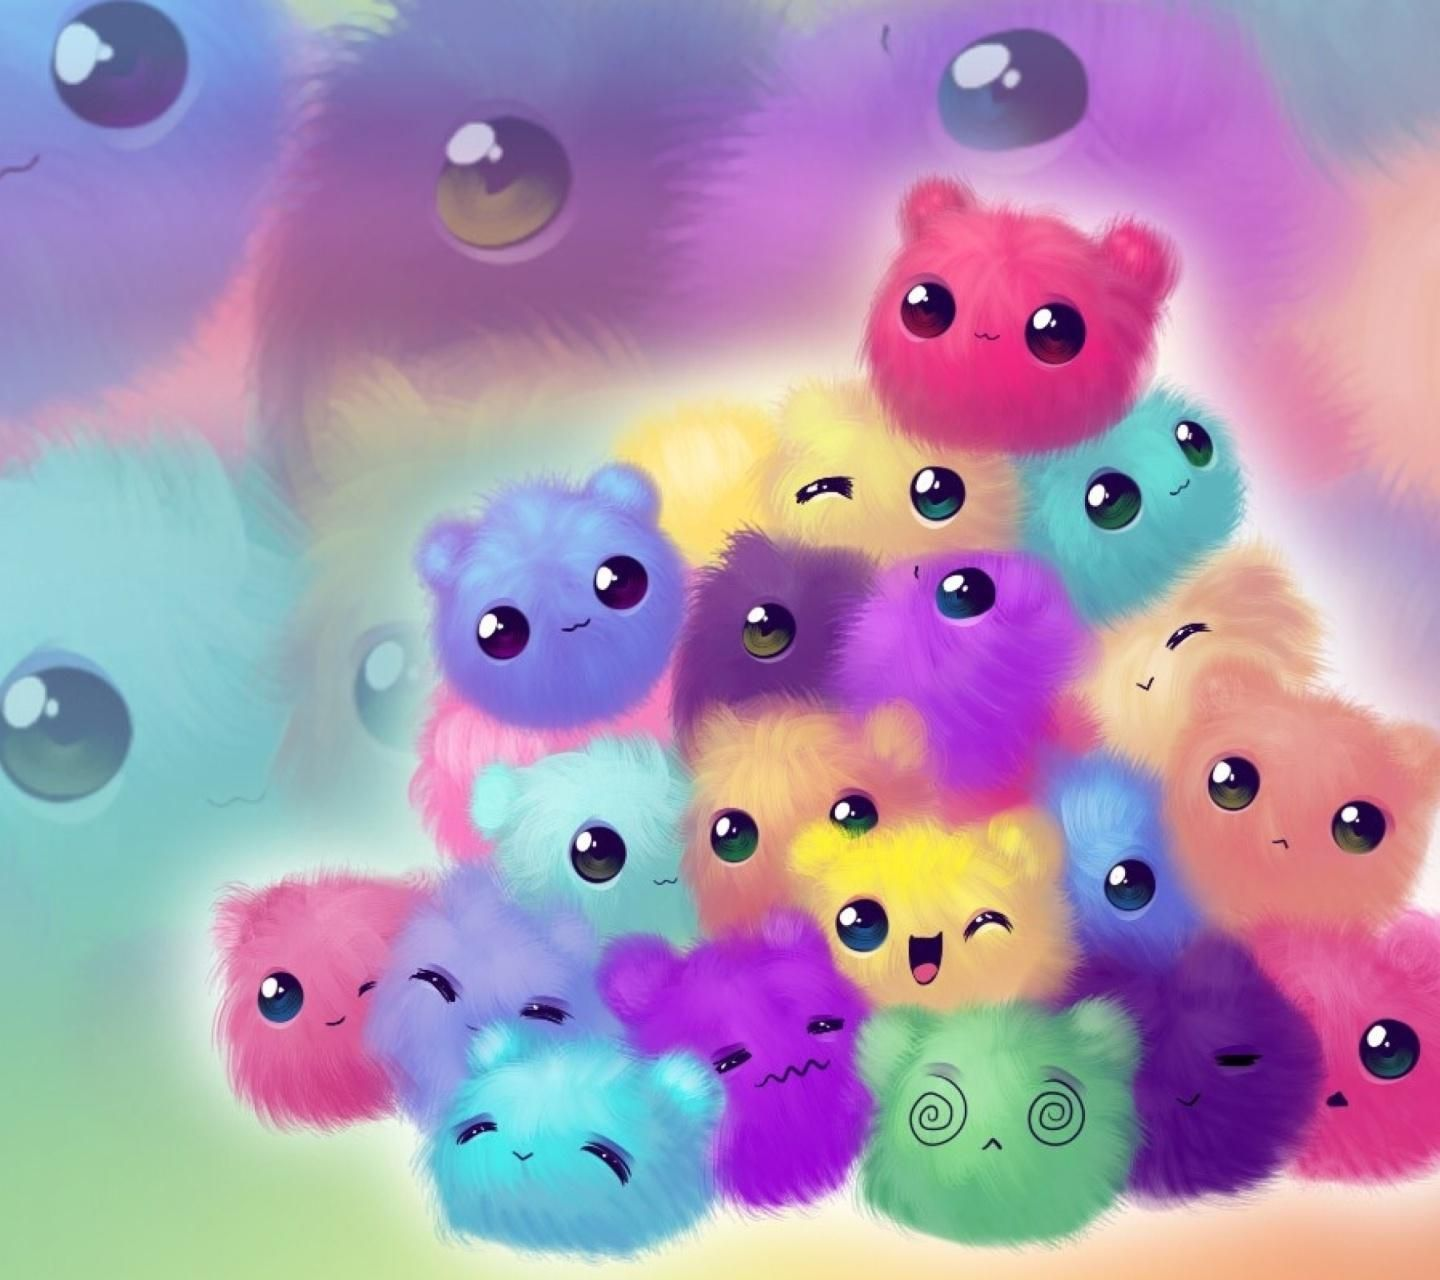 Download Cute Pompoms Animals Wallpaper By Ashra Exe 59 Free On Zedge Now Browse Millions O Kawaii Wallpaper Cute Girl Wallpaper Cute Wallpaper For Phone